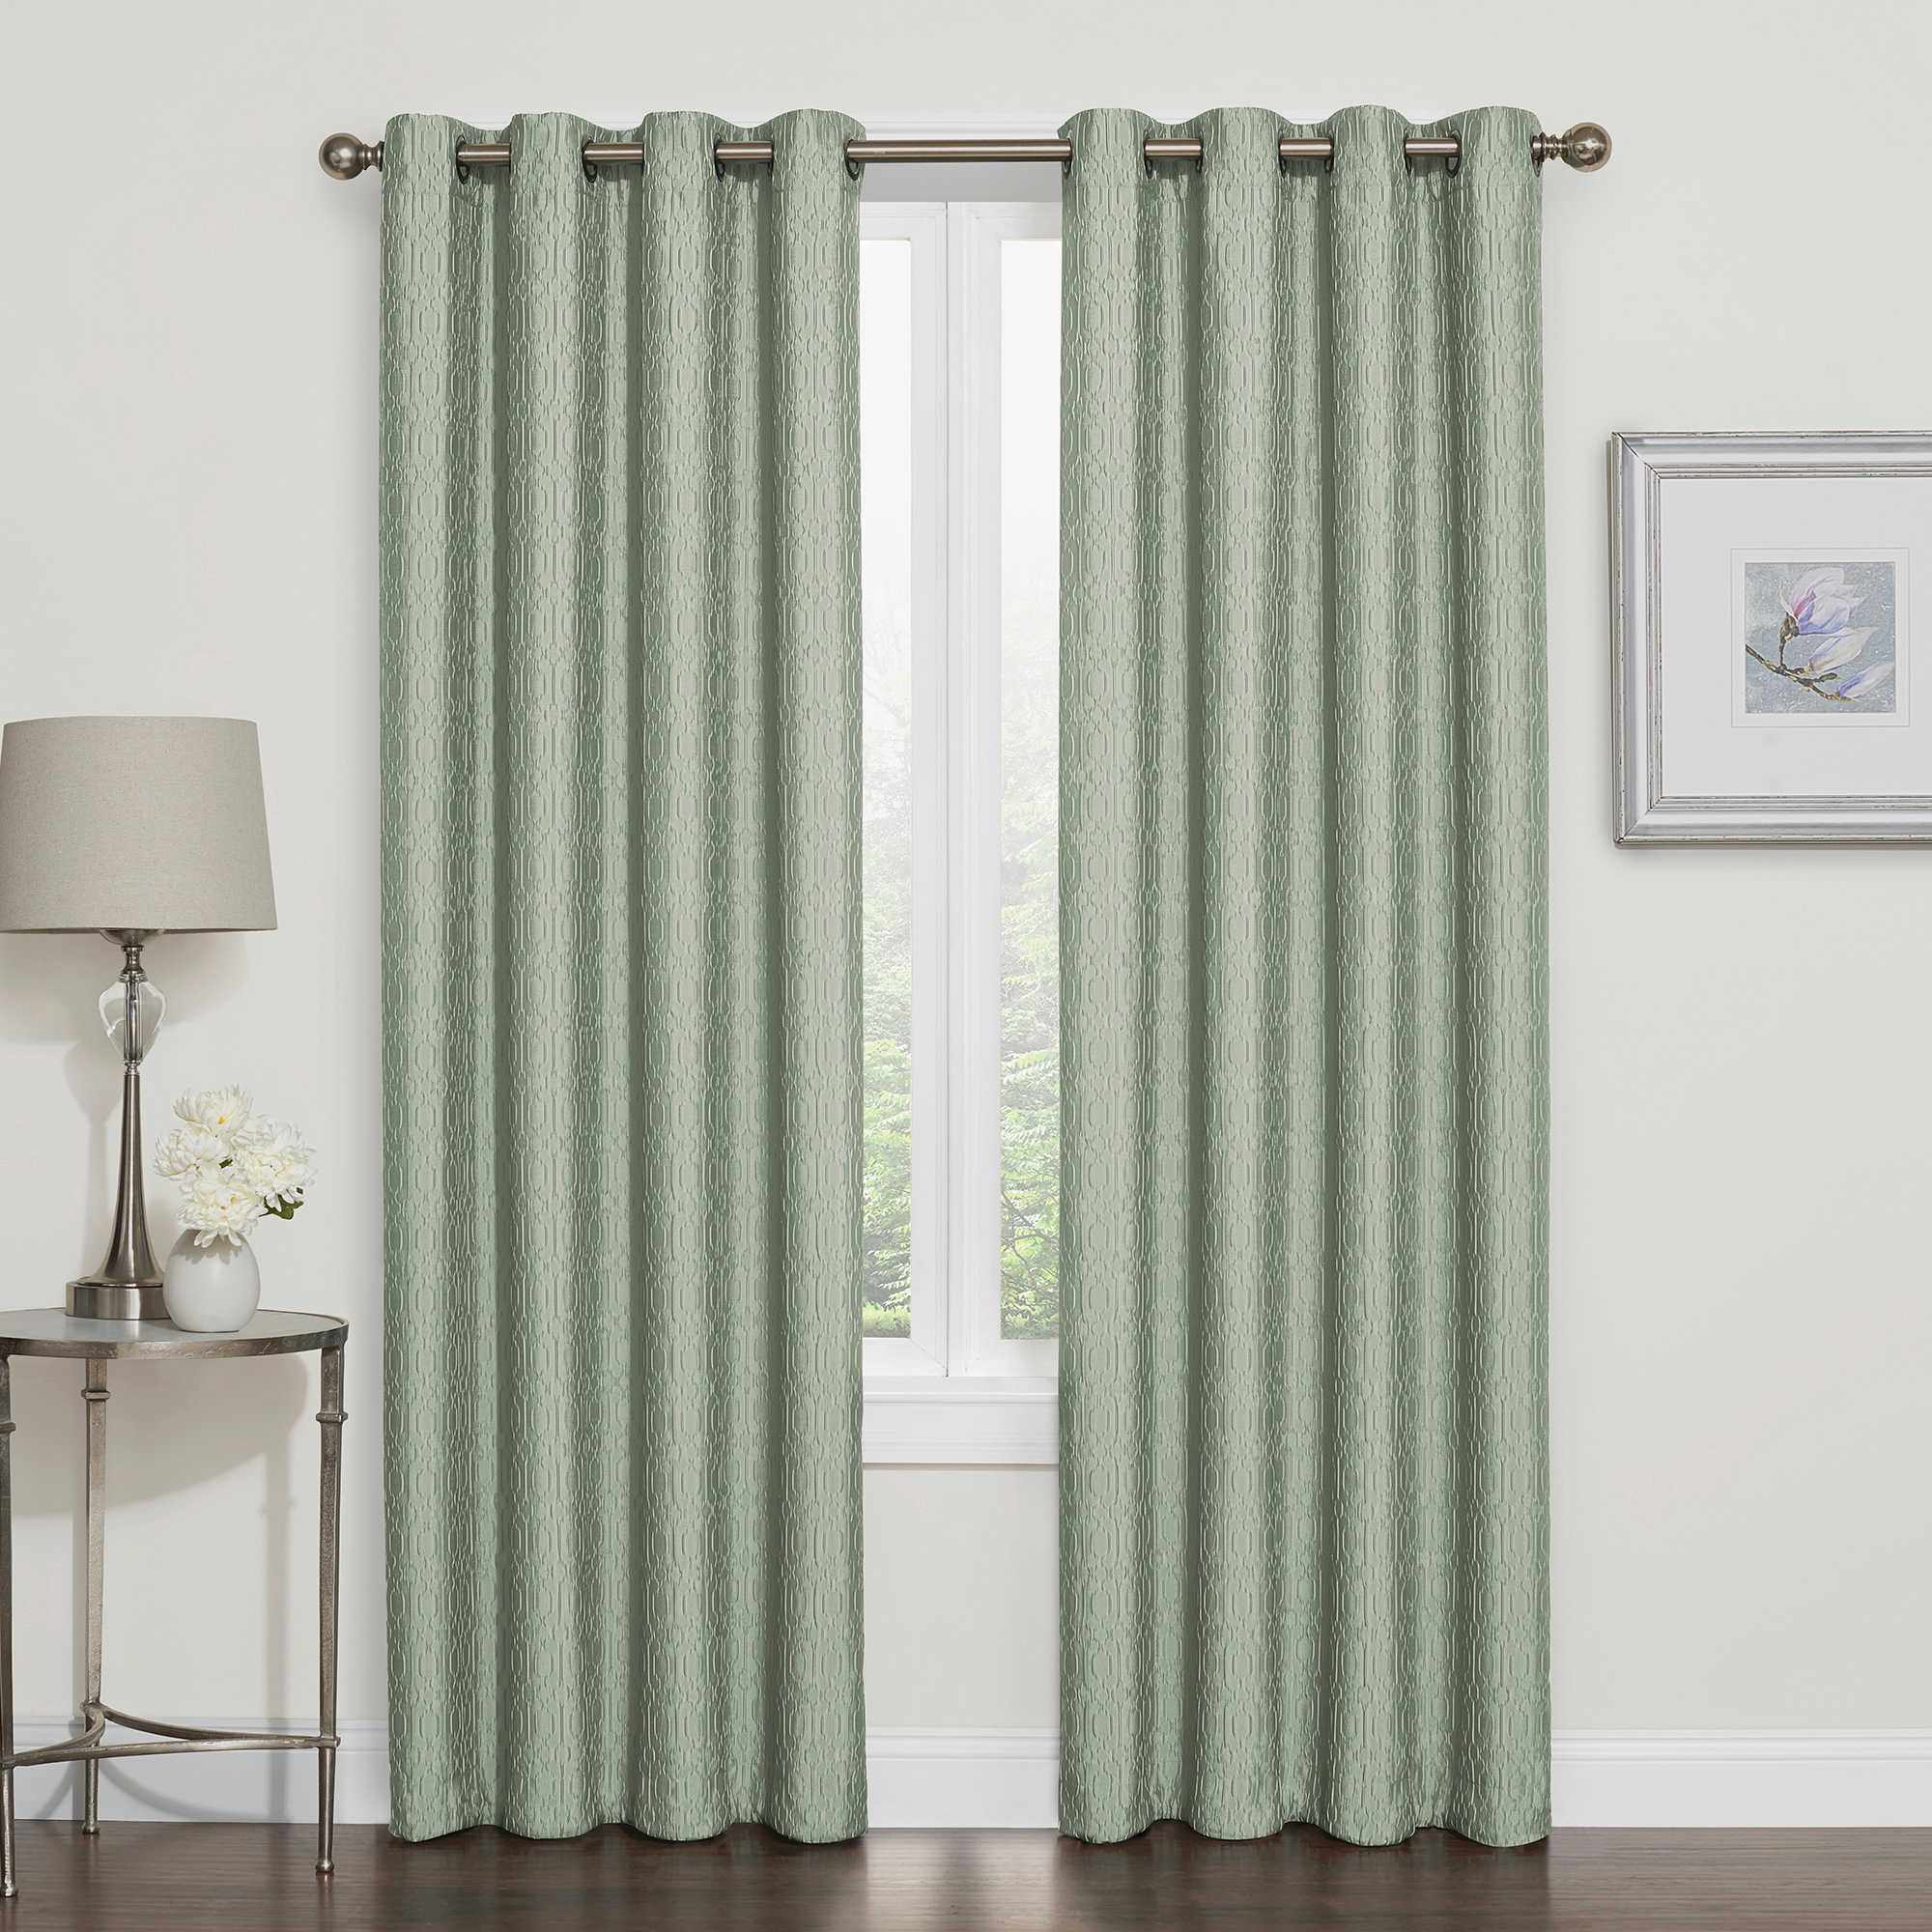 and light inch curtains home designs eclipse gray thermal insulated curtain blackout blinds shop out full green block solid size top walmart best target of grommet complete to kitchen red navy unique drapes fresh silver blue elegant white furniture linen yellow aurora